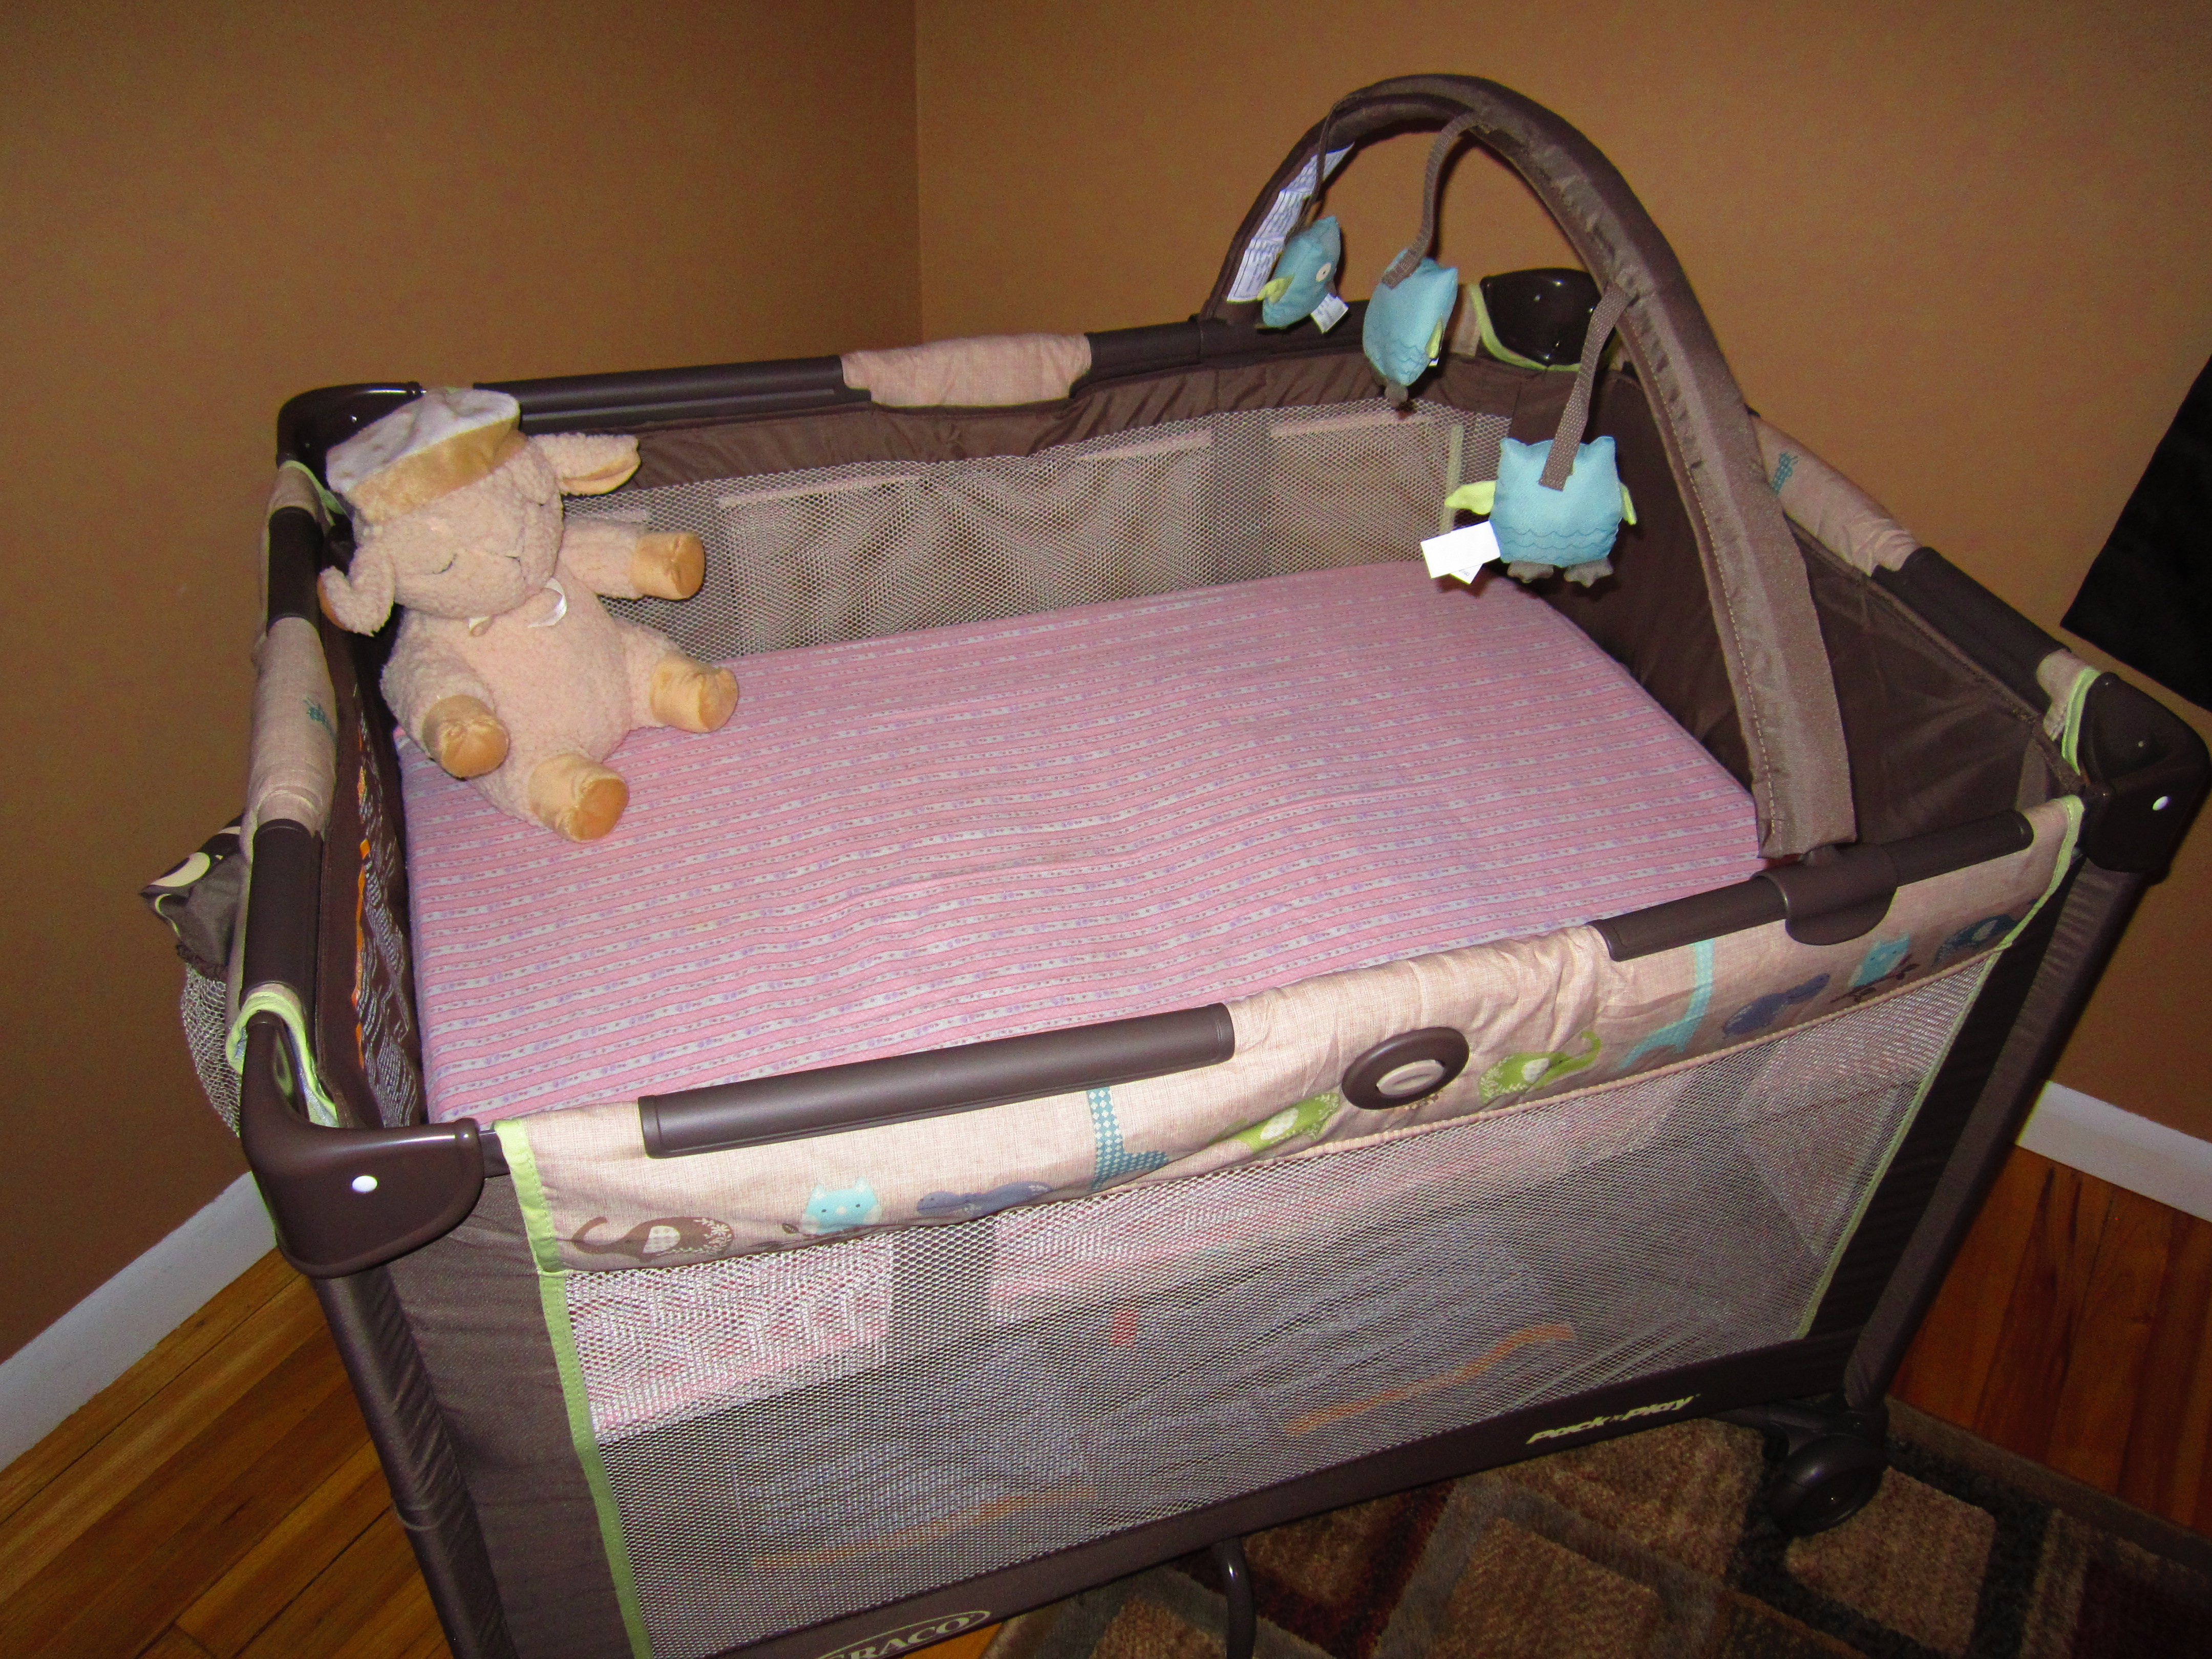 Fullsize Of Pack And Play Mattress